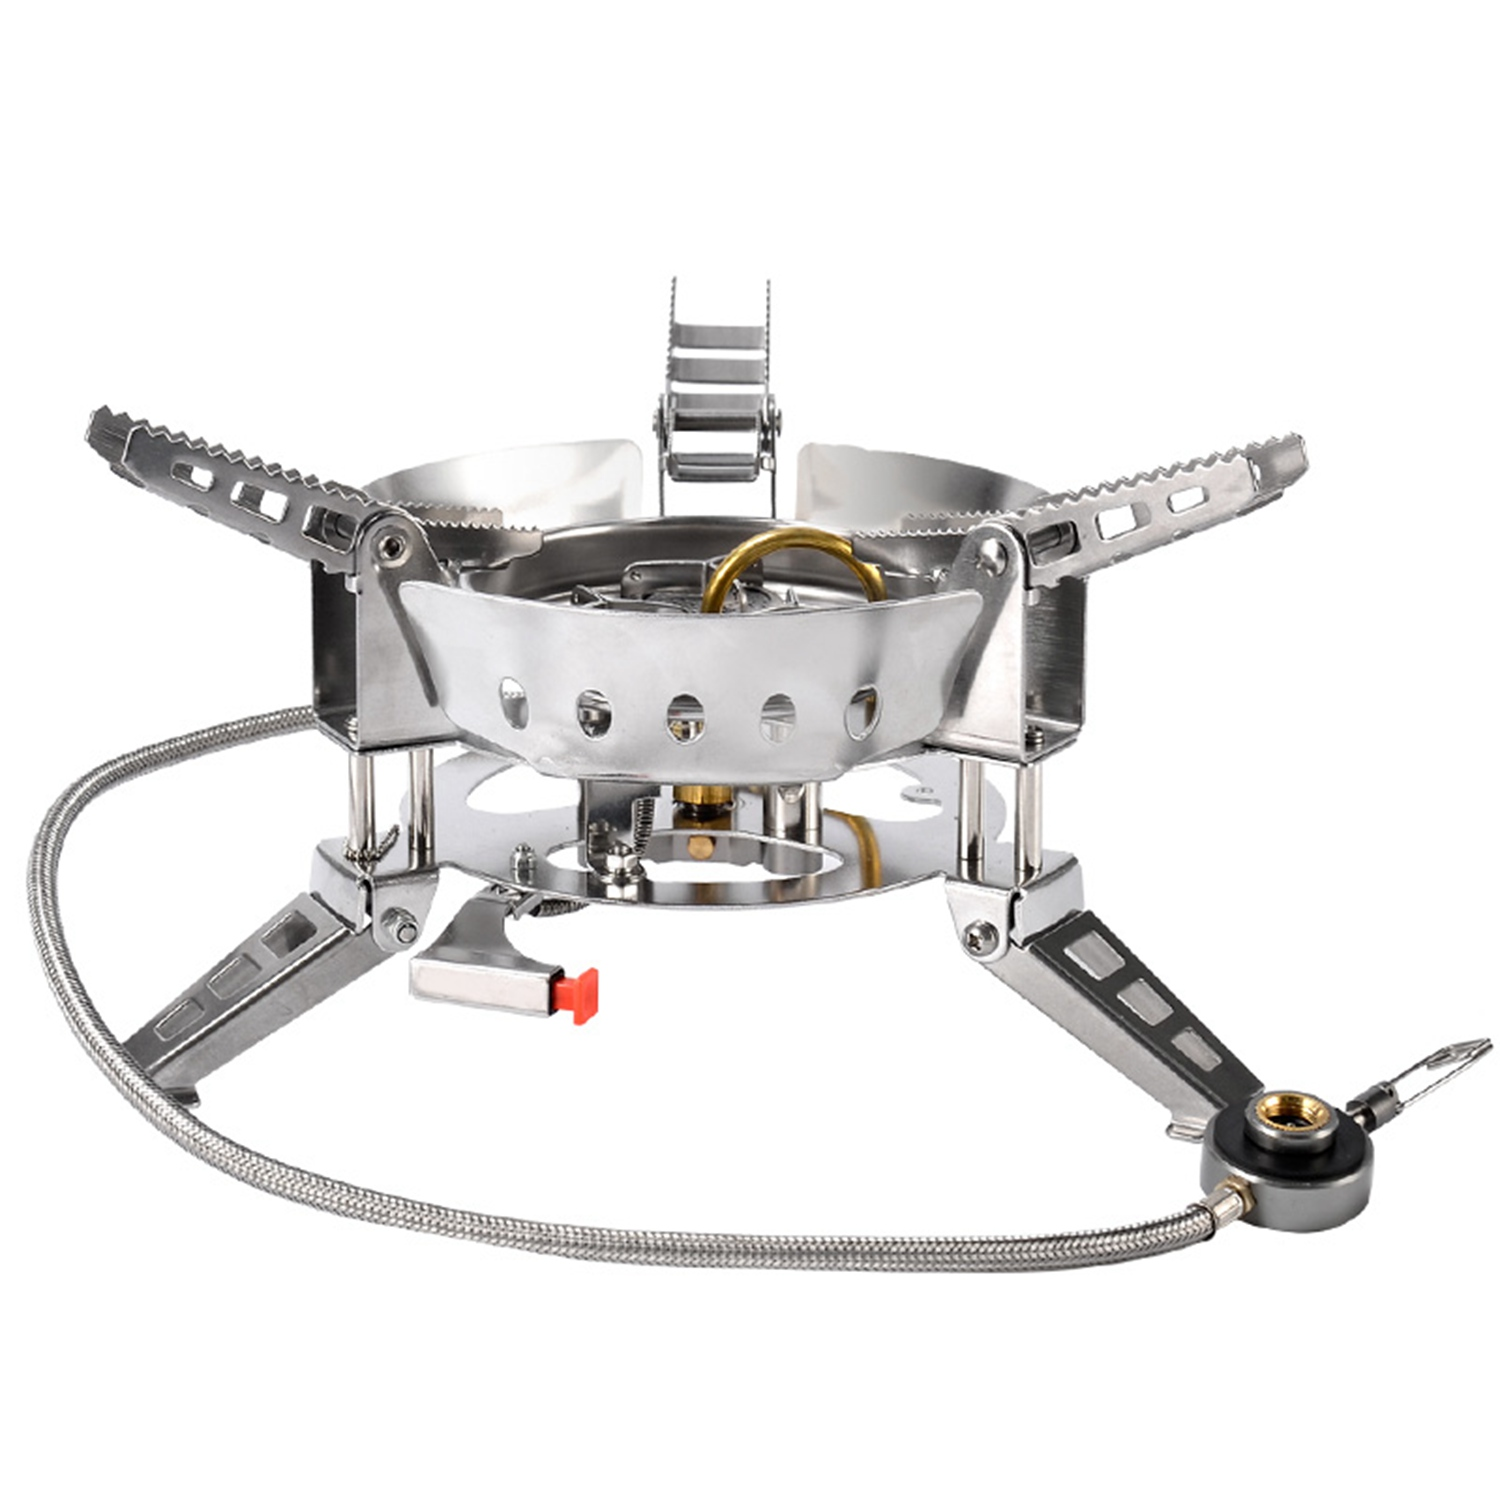 FSTE Foldable Split Gas Stove Portable Picnic Windproof Gas Stoves Cooking Bbq Outdoor Camping Hiking Gas Stoves